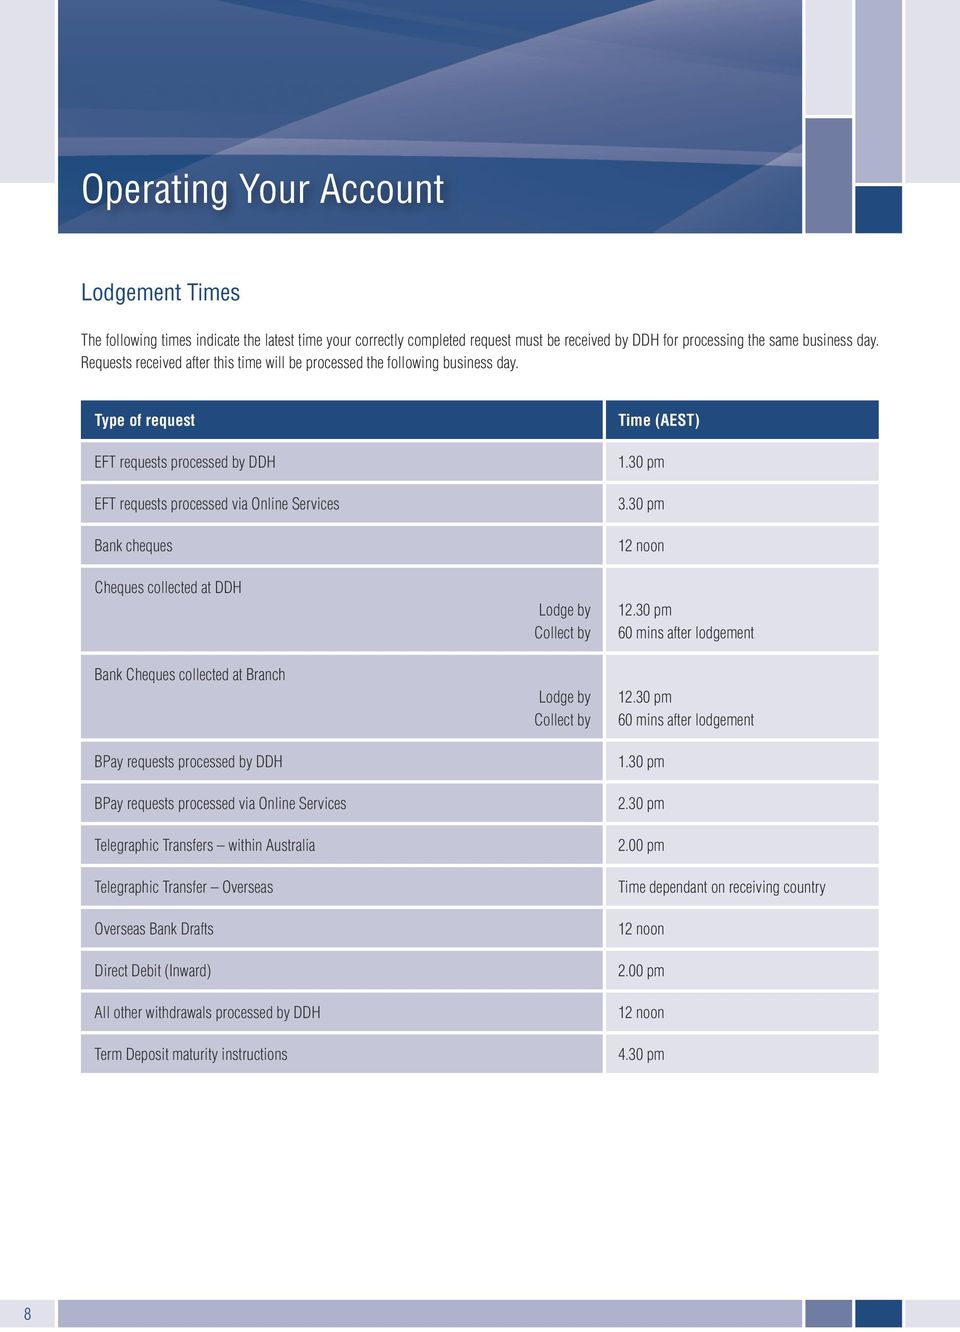 Type of request EFT requests processed by DDH EFT requests processed via Online Services Bank cheques Cheques collected at DDH Bank Cheques collected at Branch BPay requests processed by DDH BPay